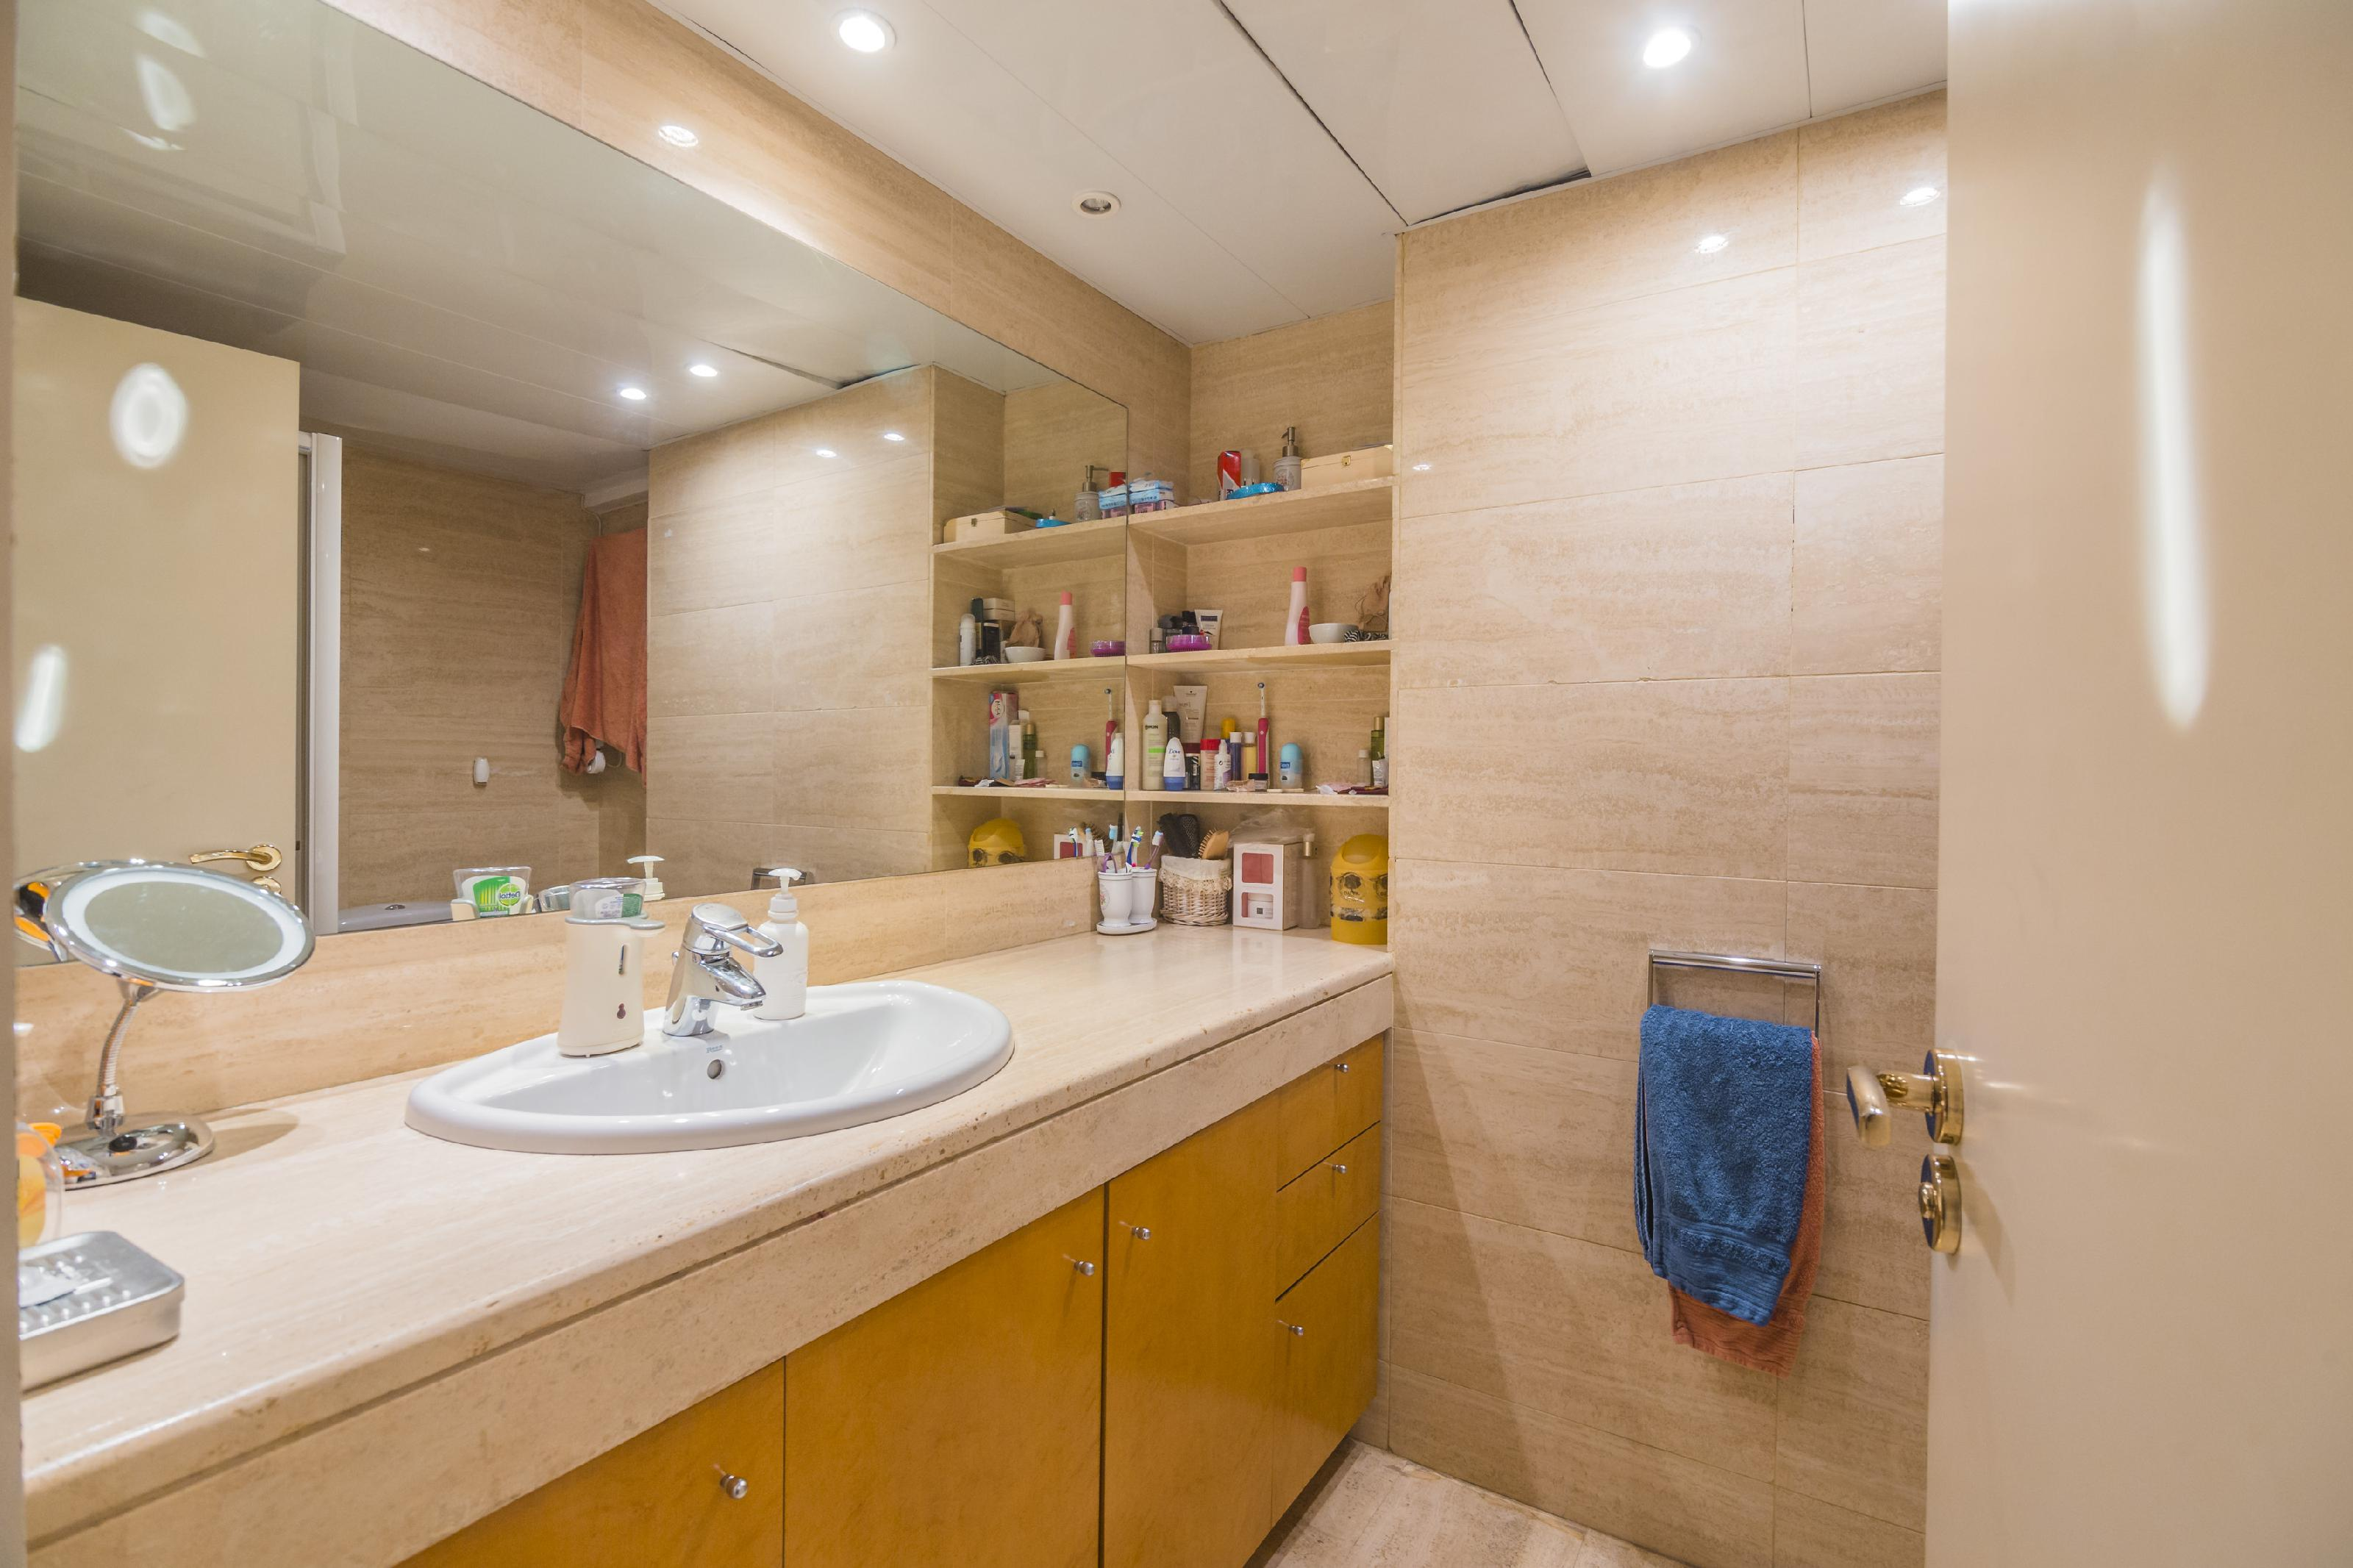 232637 Penthouse for sale in Sarrià-Sant Gervasi, Sant Gervasi-Galvany 12